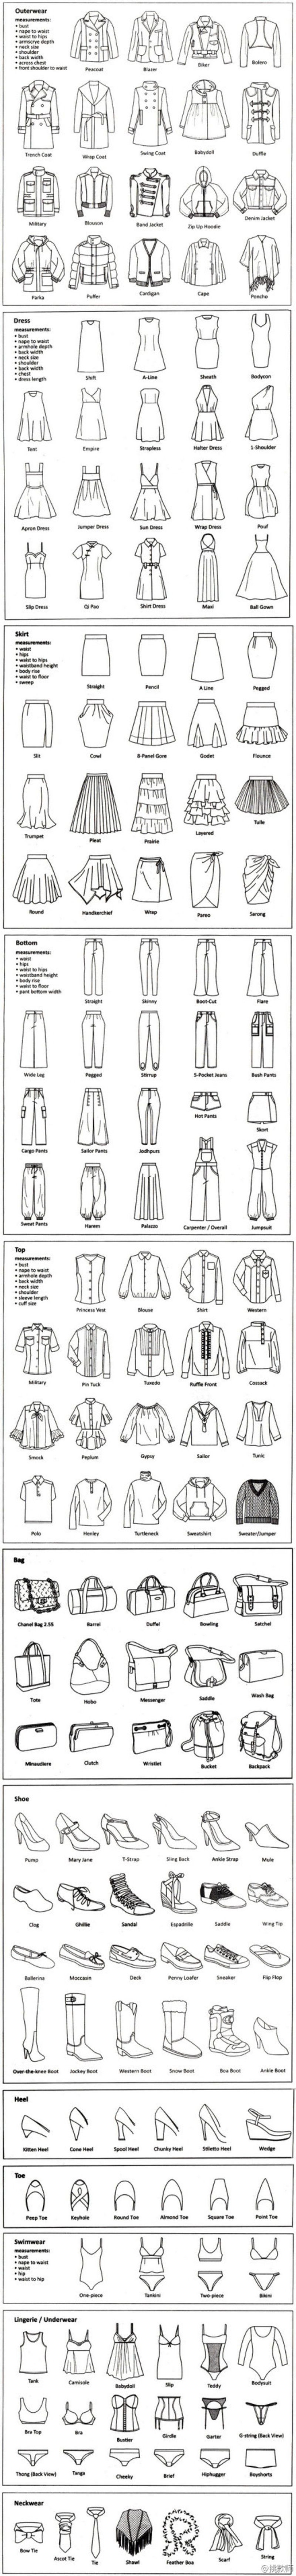 00 Current and acceptable use of fashion. Accesories- Added to the clothing. Fad or Craze- Something famous for a short period of time Design- something designed. Draped- Clothing draped. Classis- somefthing classic or older fashion